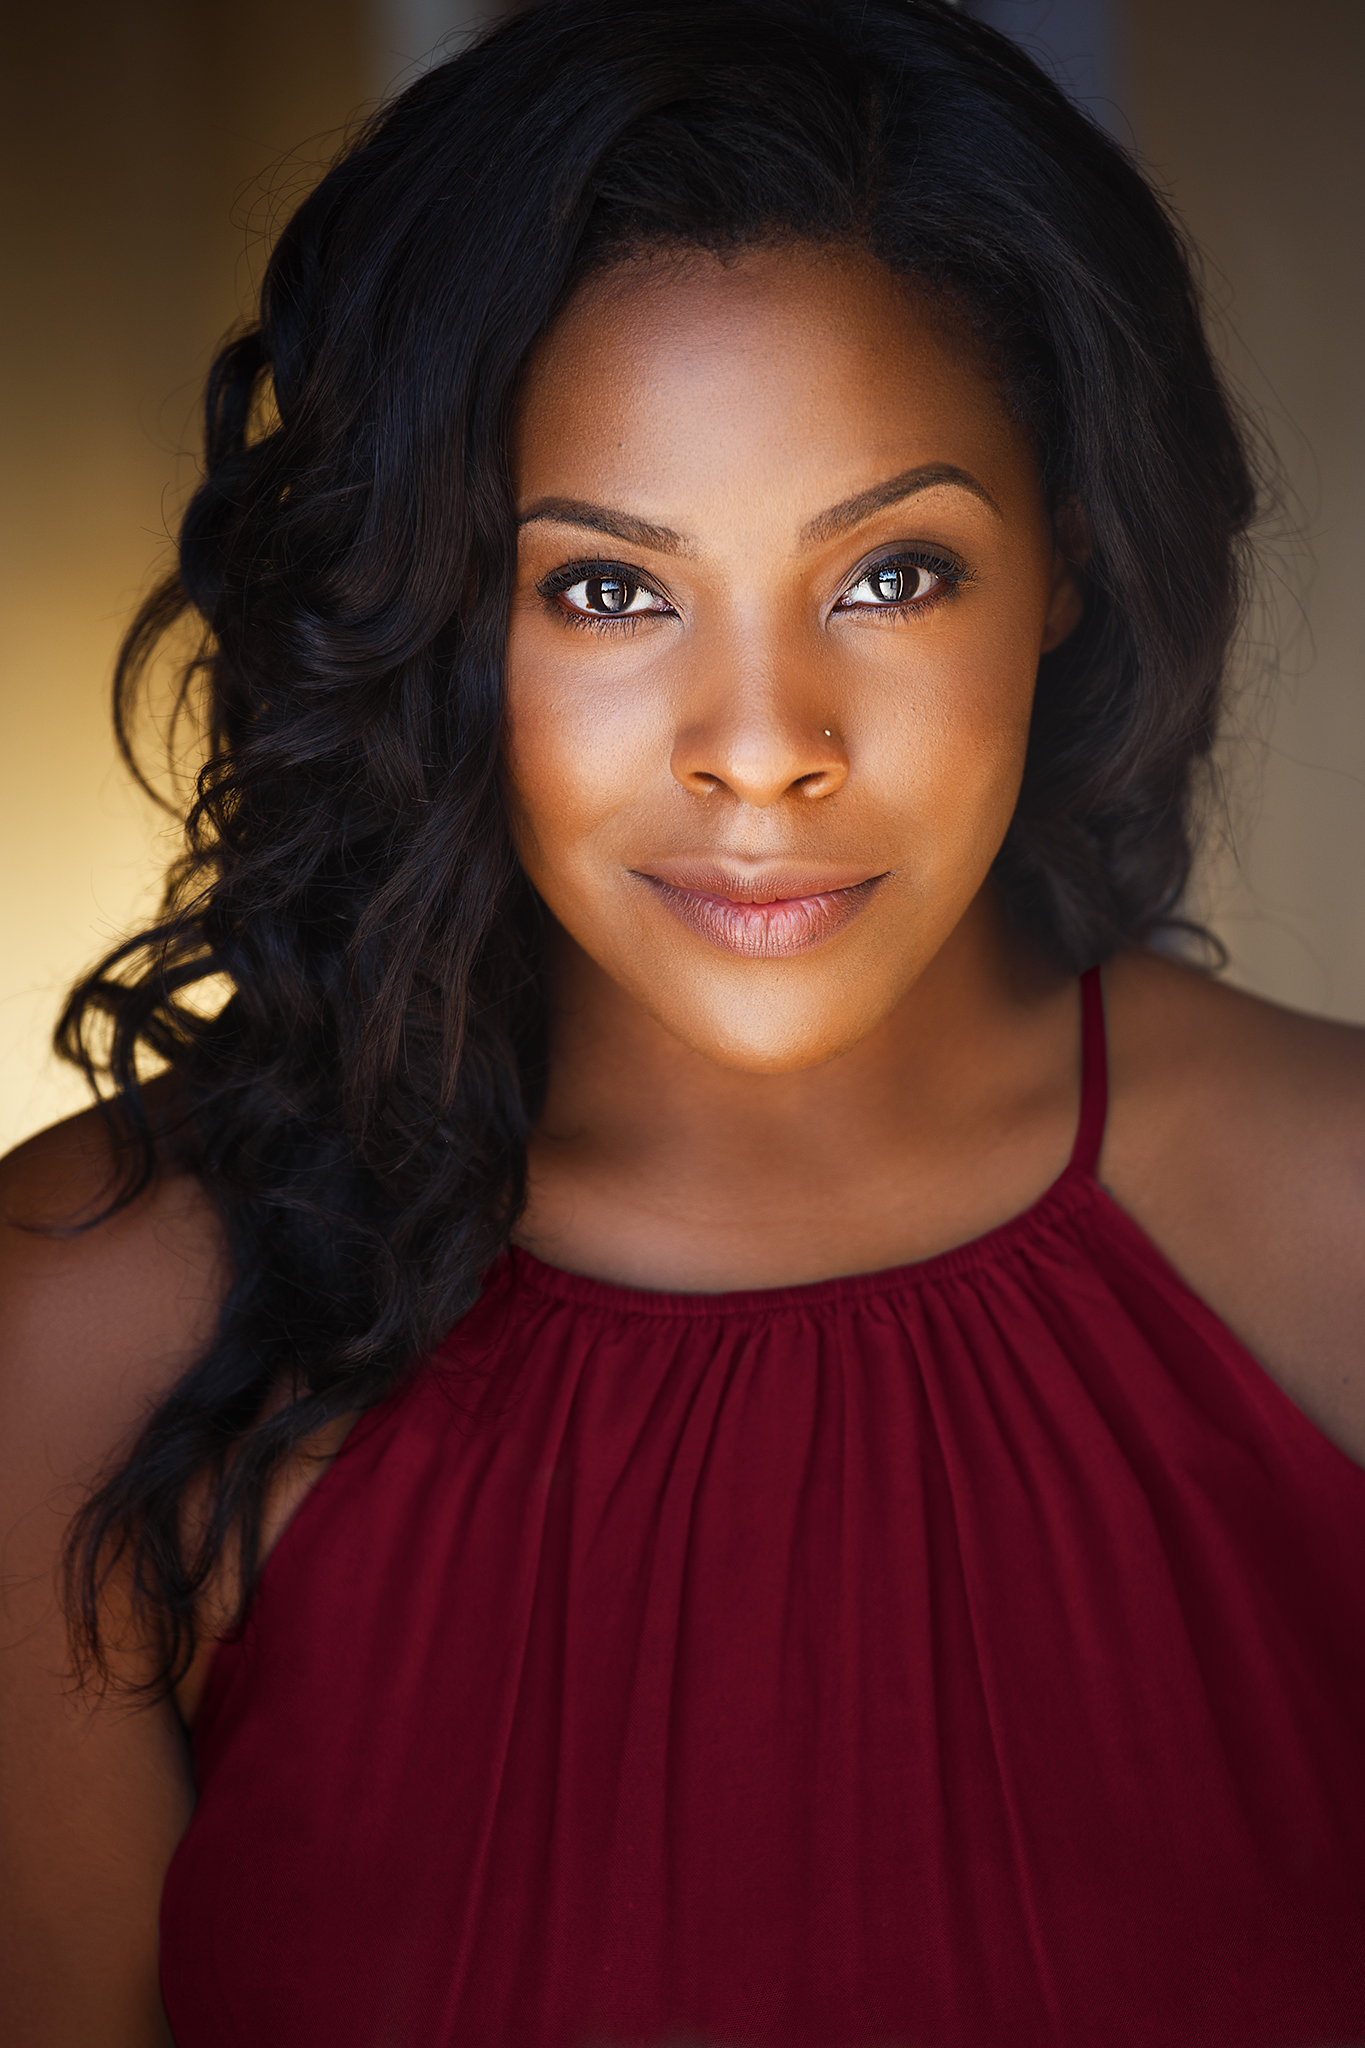 BRYONHA MARIE PARHAM  Broadway:  Prince of Broadway, The Gershwin's Porgy and Bess, After Midnight, The Book of Mormon, Ragtime Tour: Falsettos